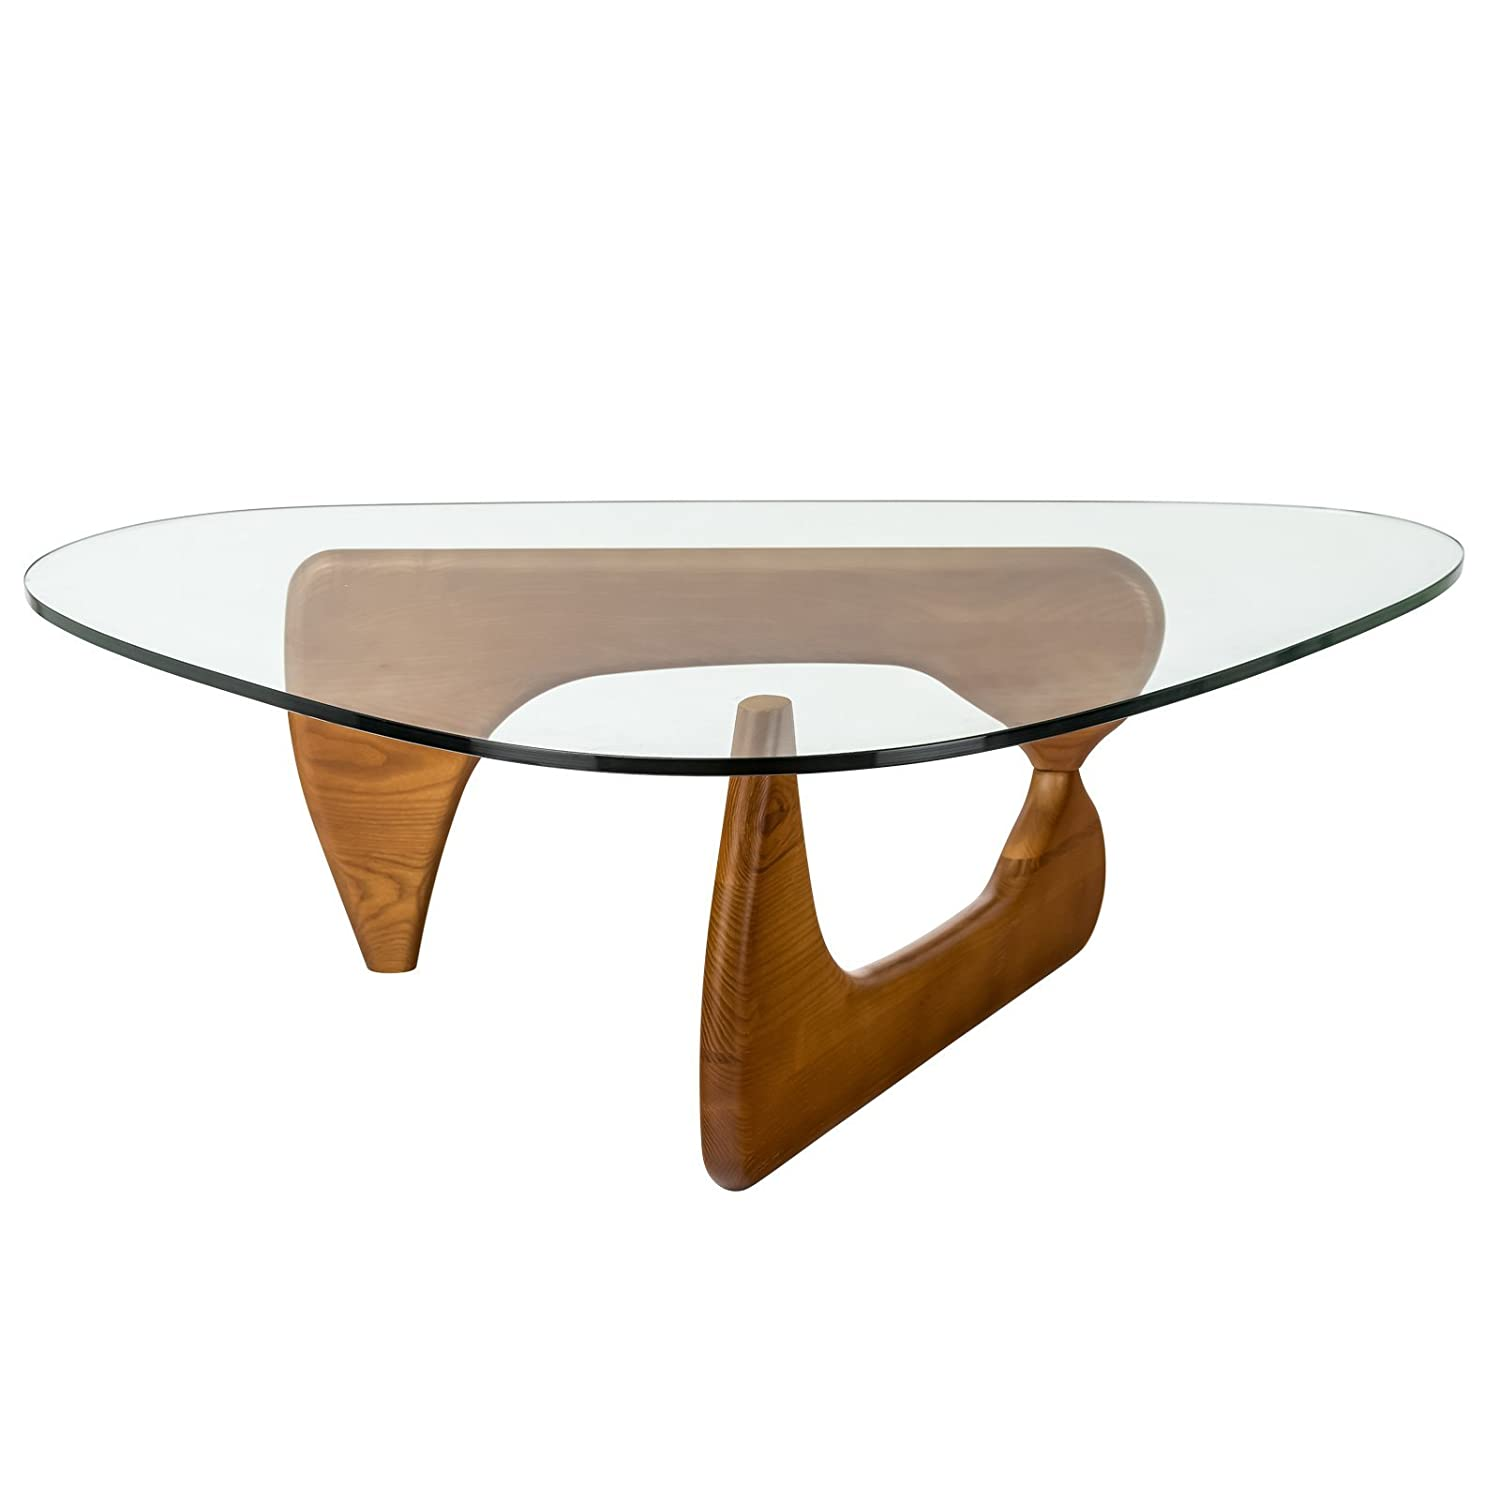 Amazon: Poly And Bark Noguchi Style Triangular Coffee Table In Walnut:  Kitchen & Dining